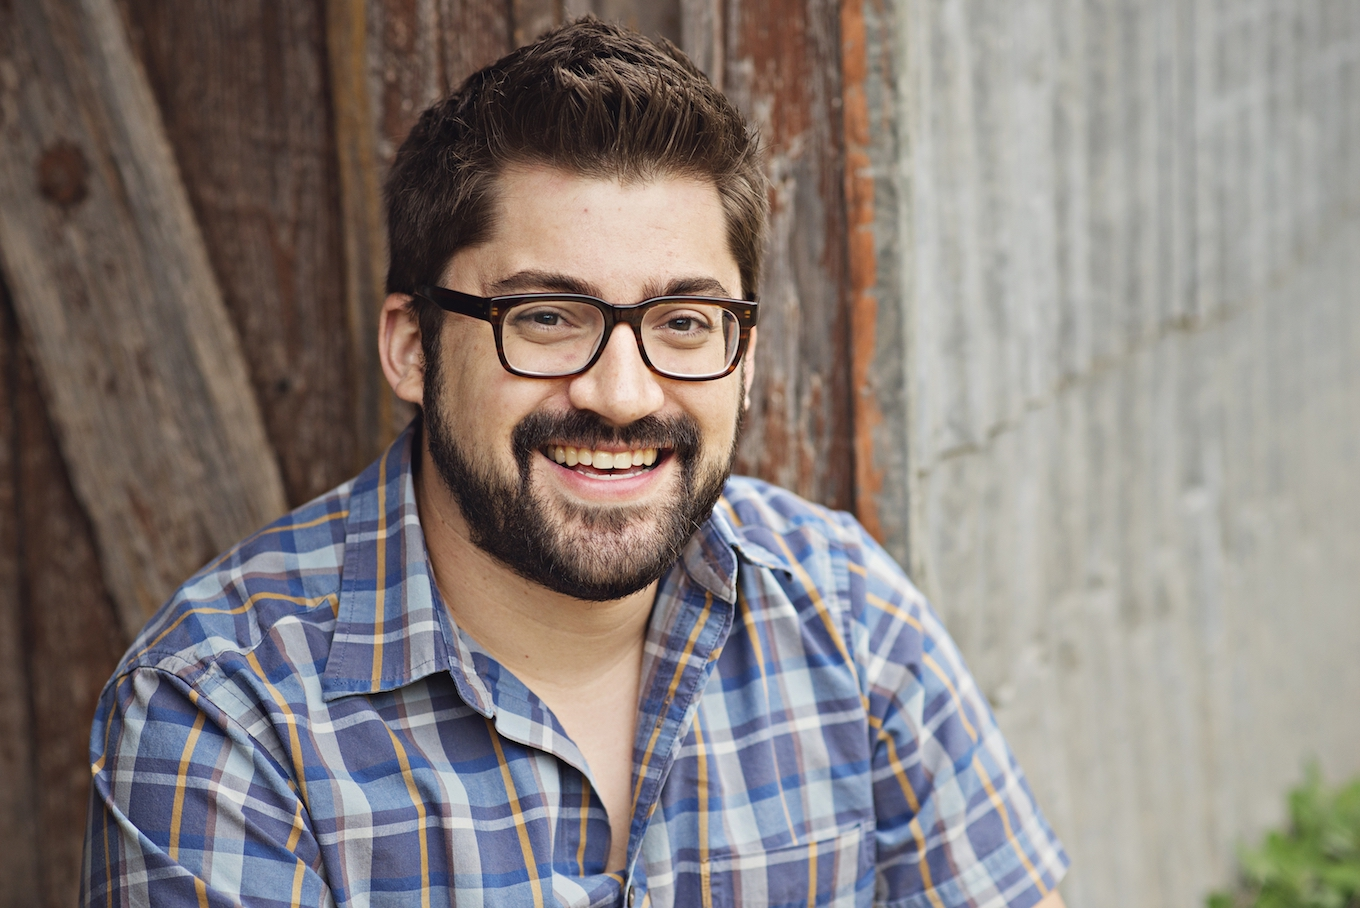 Author Austin Kleon show your work